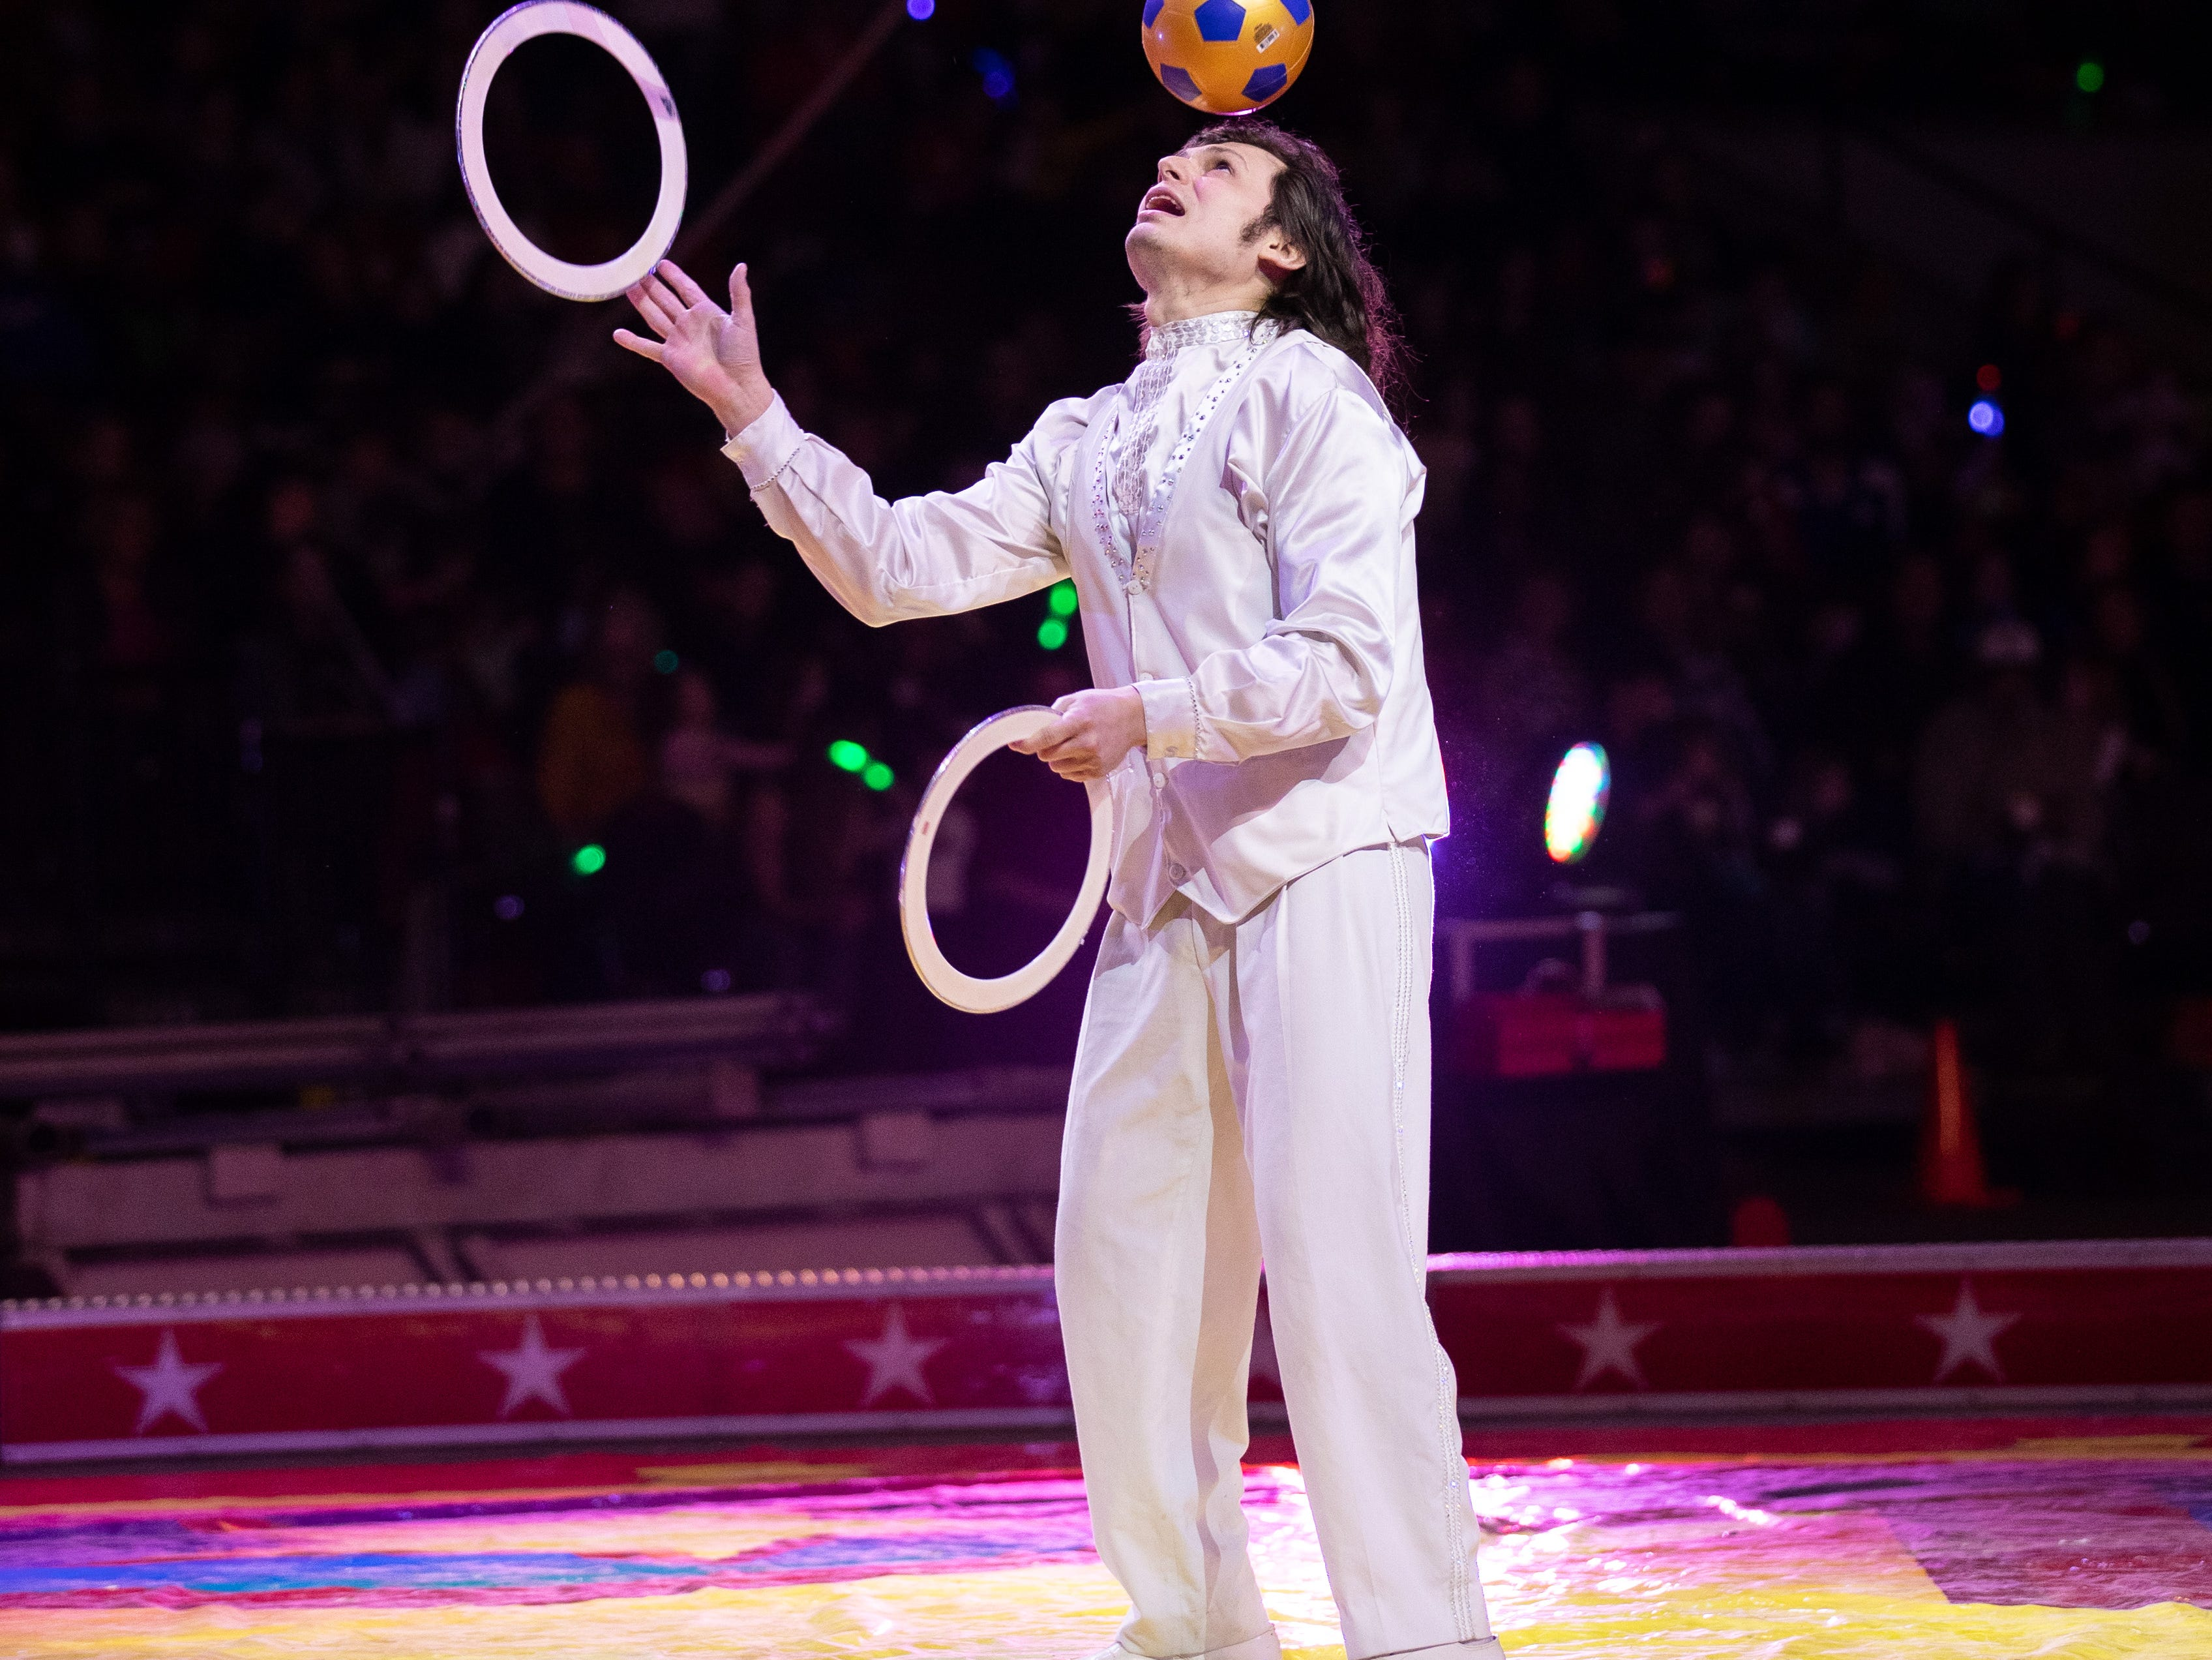 A juggler in the center ring tosses rings high in the air while also juggling a soccer ball on his head at the Kosair Shrine Circus, Saturday, Feb. 9, 2019 in Louisville Ky.